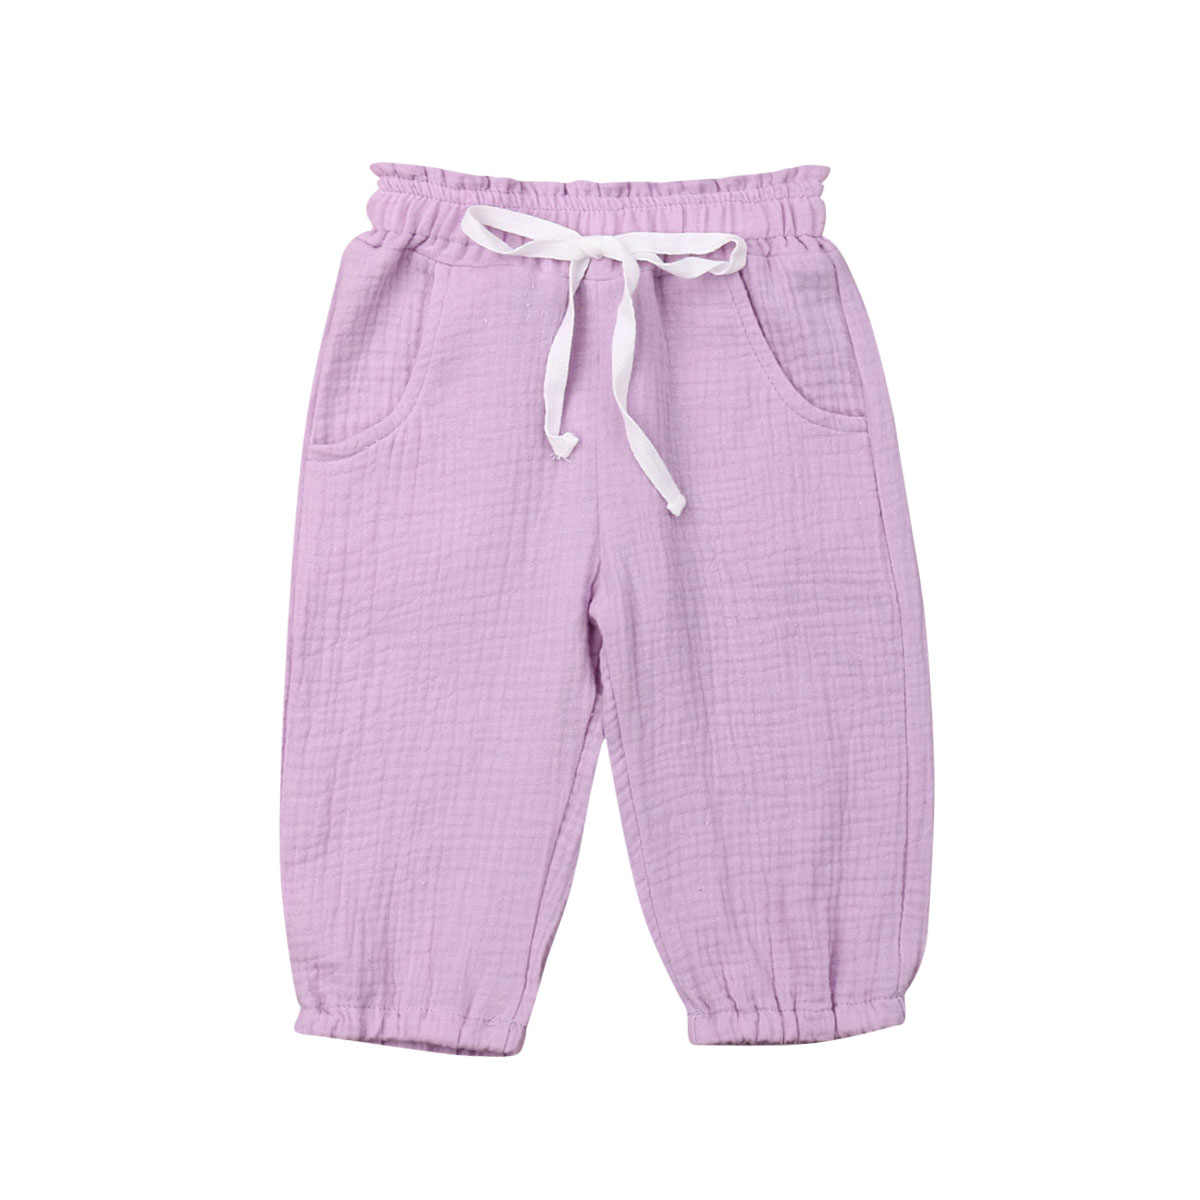 Toddler Baby Kids Girl Casual Pants Children Newborn Wrinkled Foam Cotton Bloomers Loose Summer Trousers